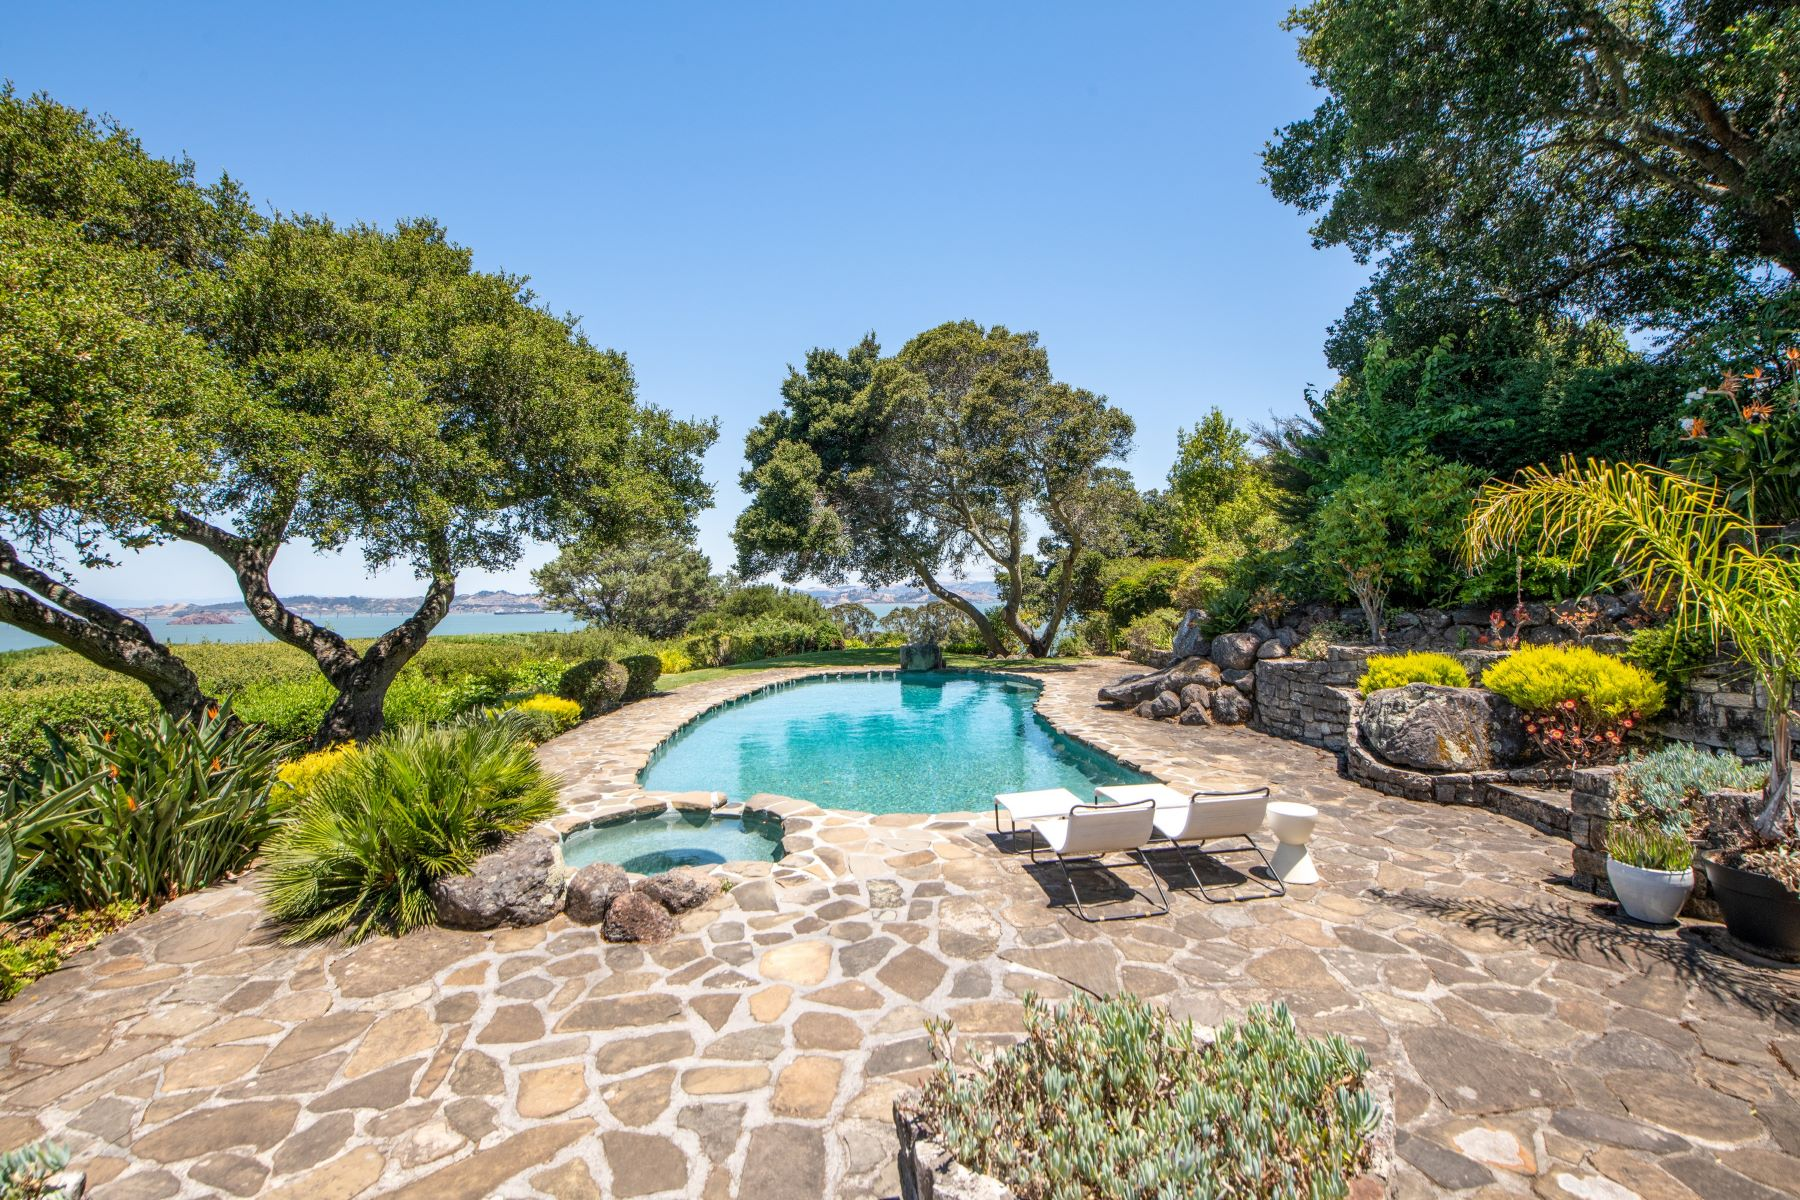 Single Family Homes for Sale at Zen like Mid Century Modern with Captivating Views 21 Teaberry Lane, Tiburon, California 94920 United States